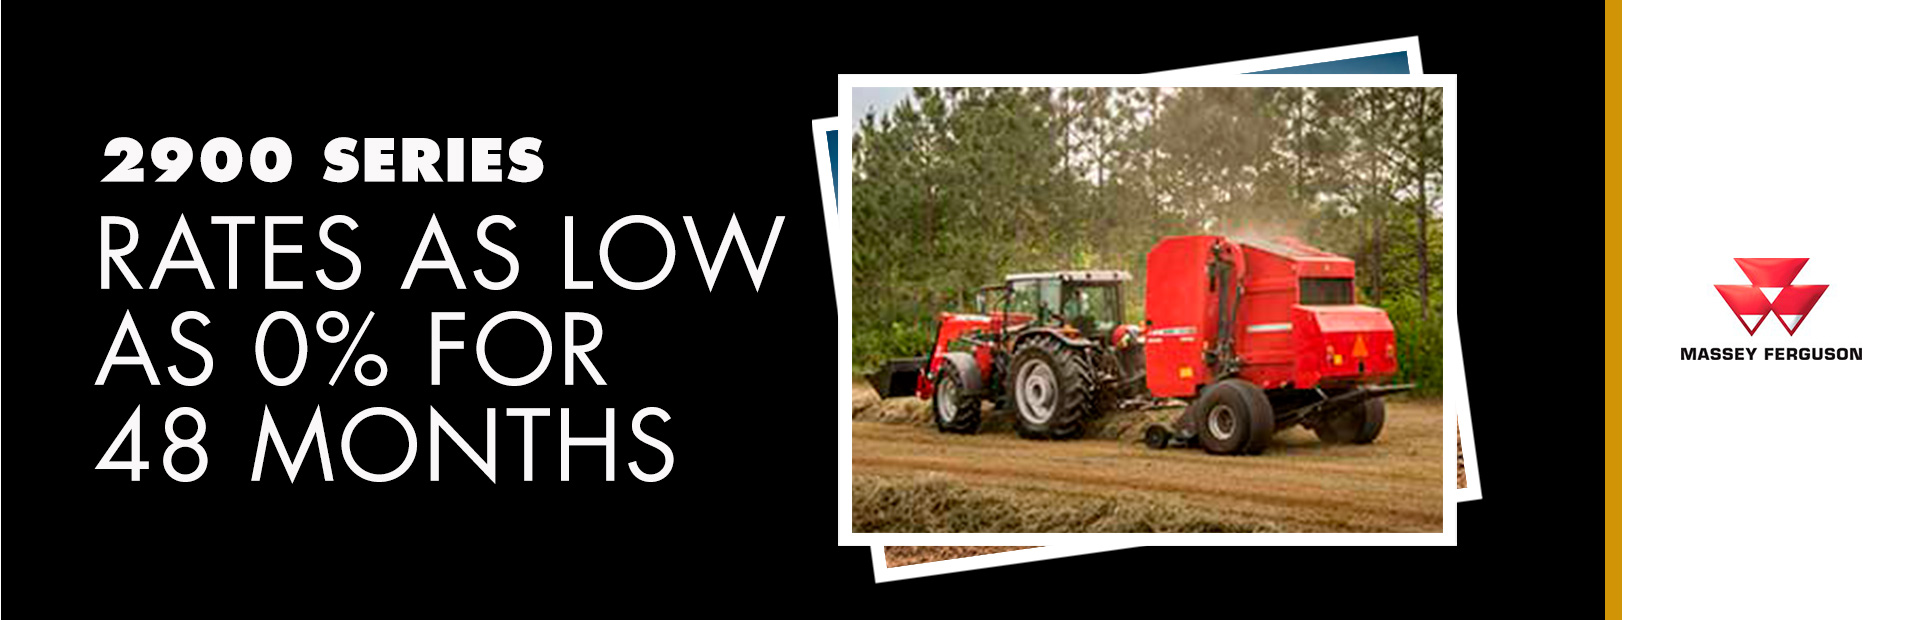 Massey Ferguson: 2900 Series - Rates as low as 0% for 48 Months